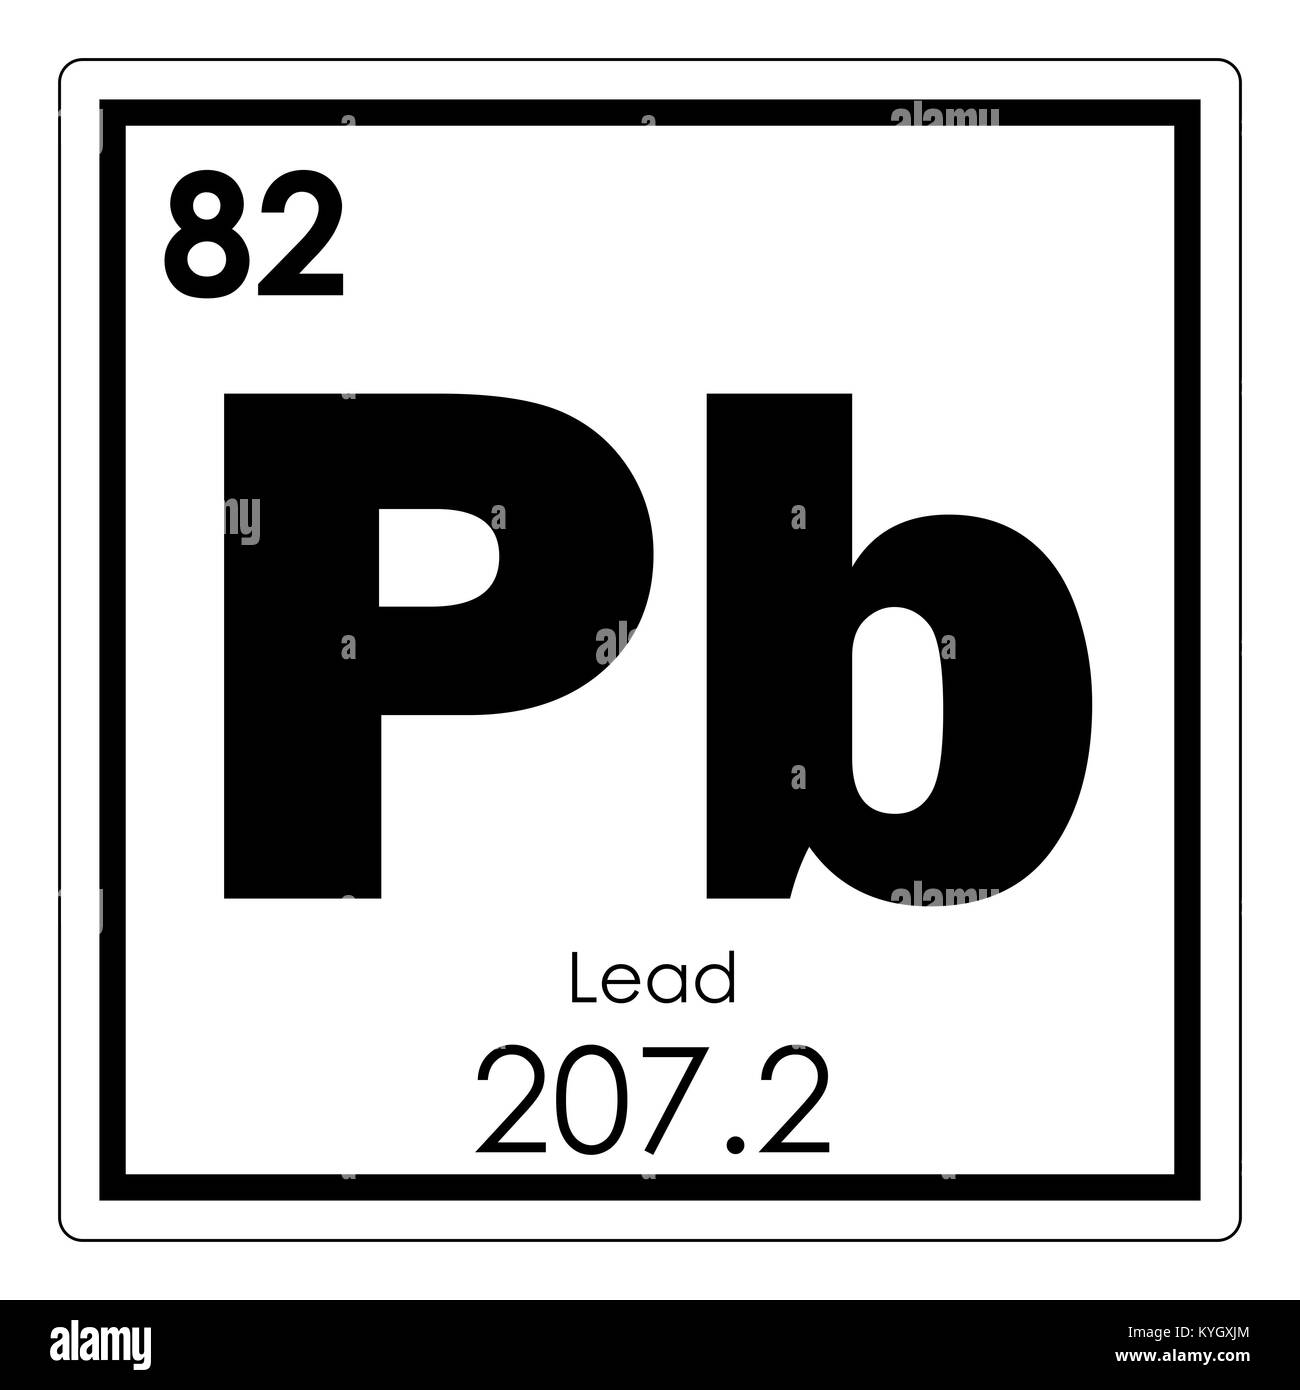 Lead chemical element periodic table science symbol stock photo lead chemical element periodic table science symbol urtaz Images